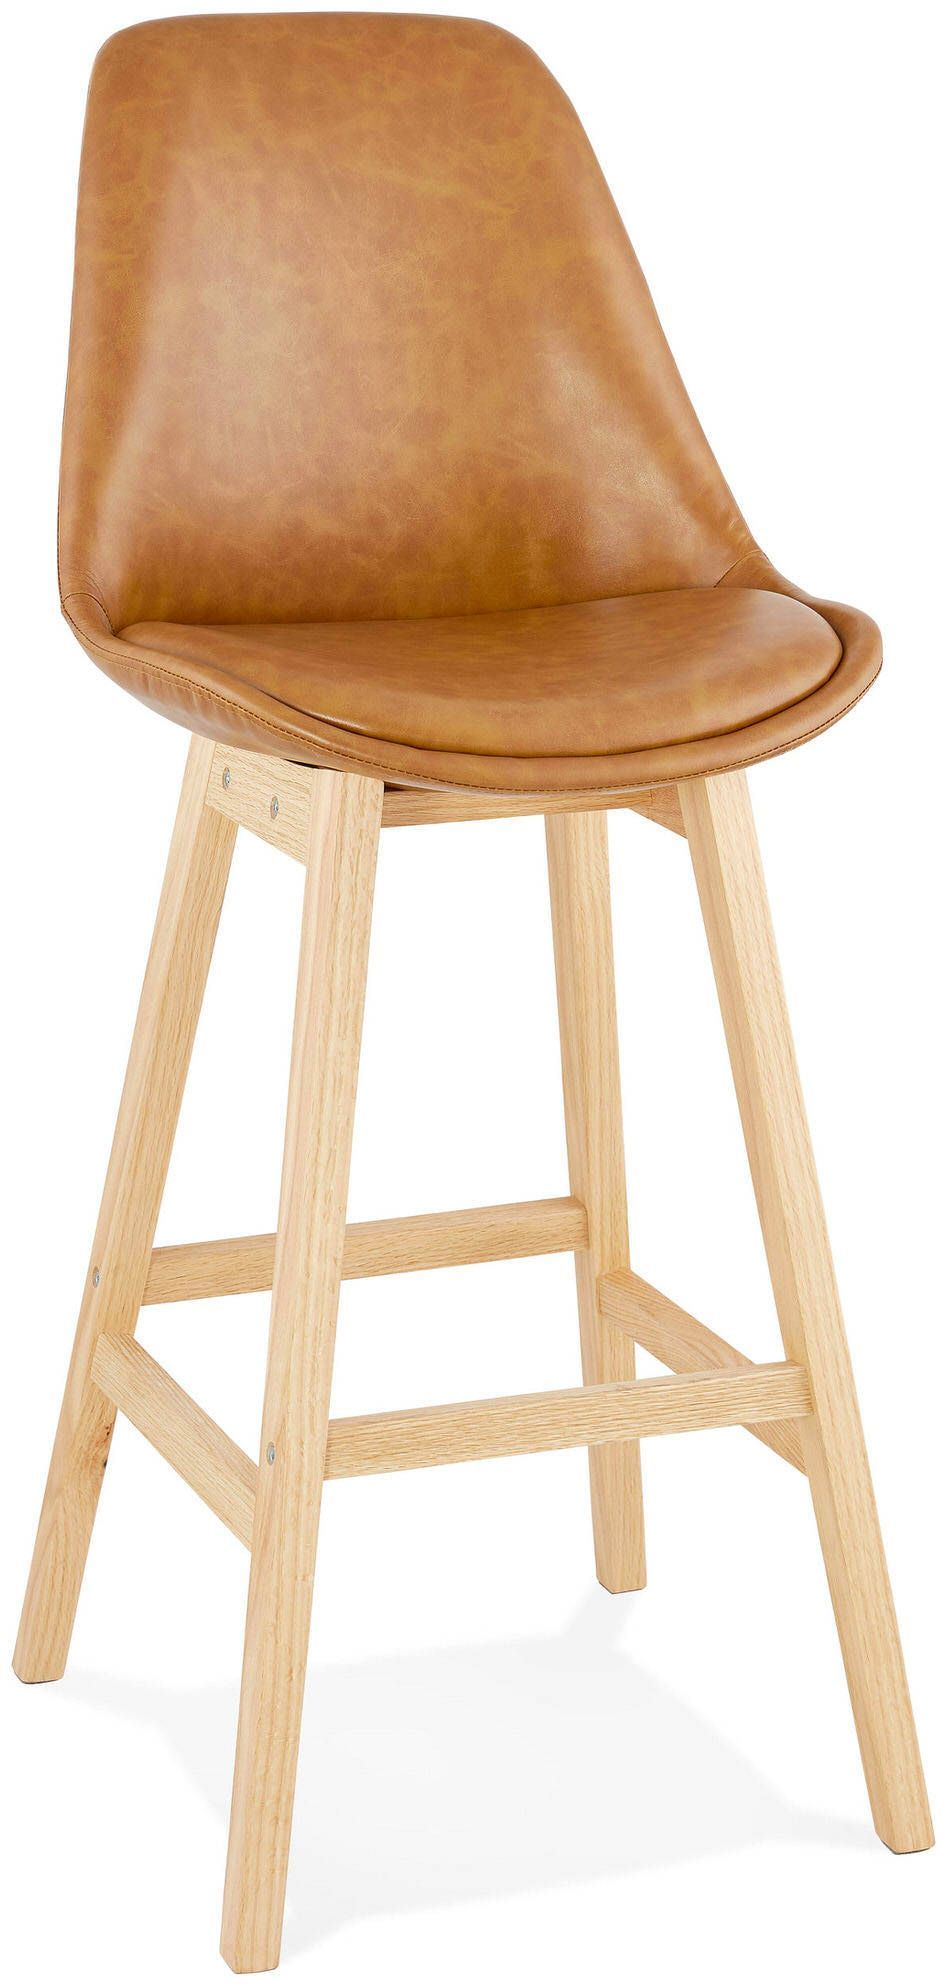 Tabouret De Bar Design Janie Kokoon Design Marron